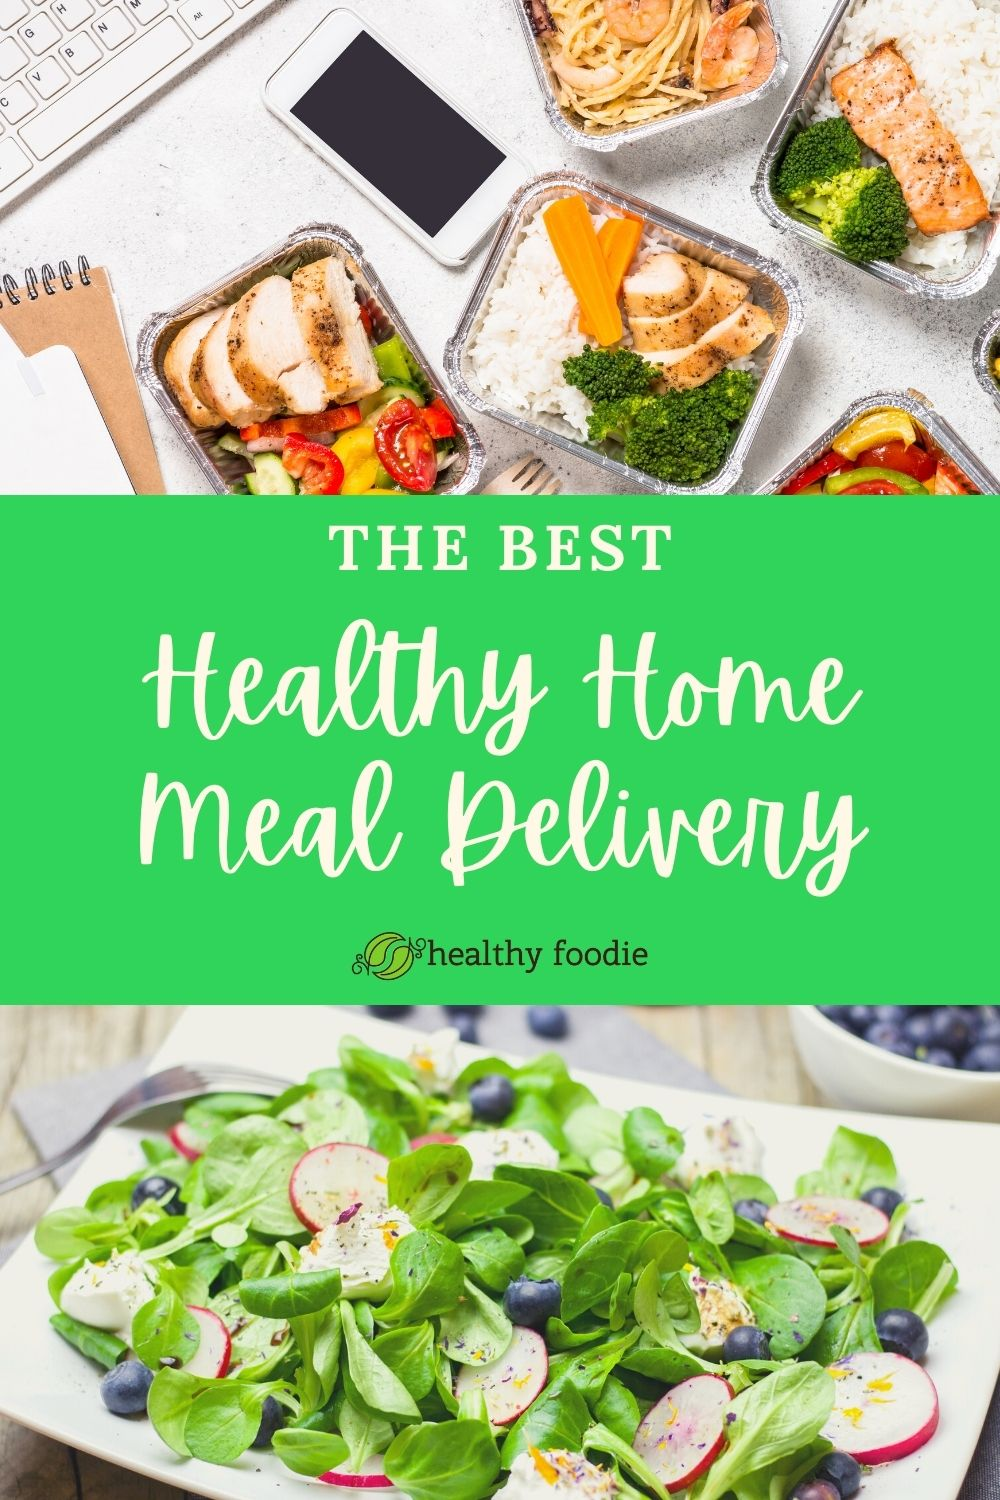 Daily Harvest Healthy Home Meal Delivery